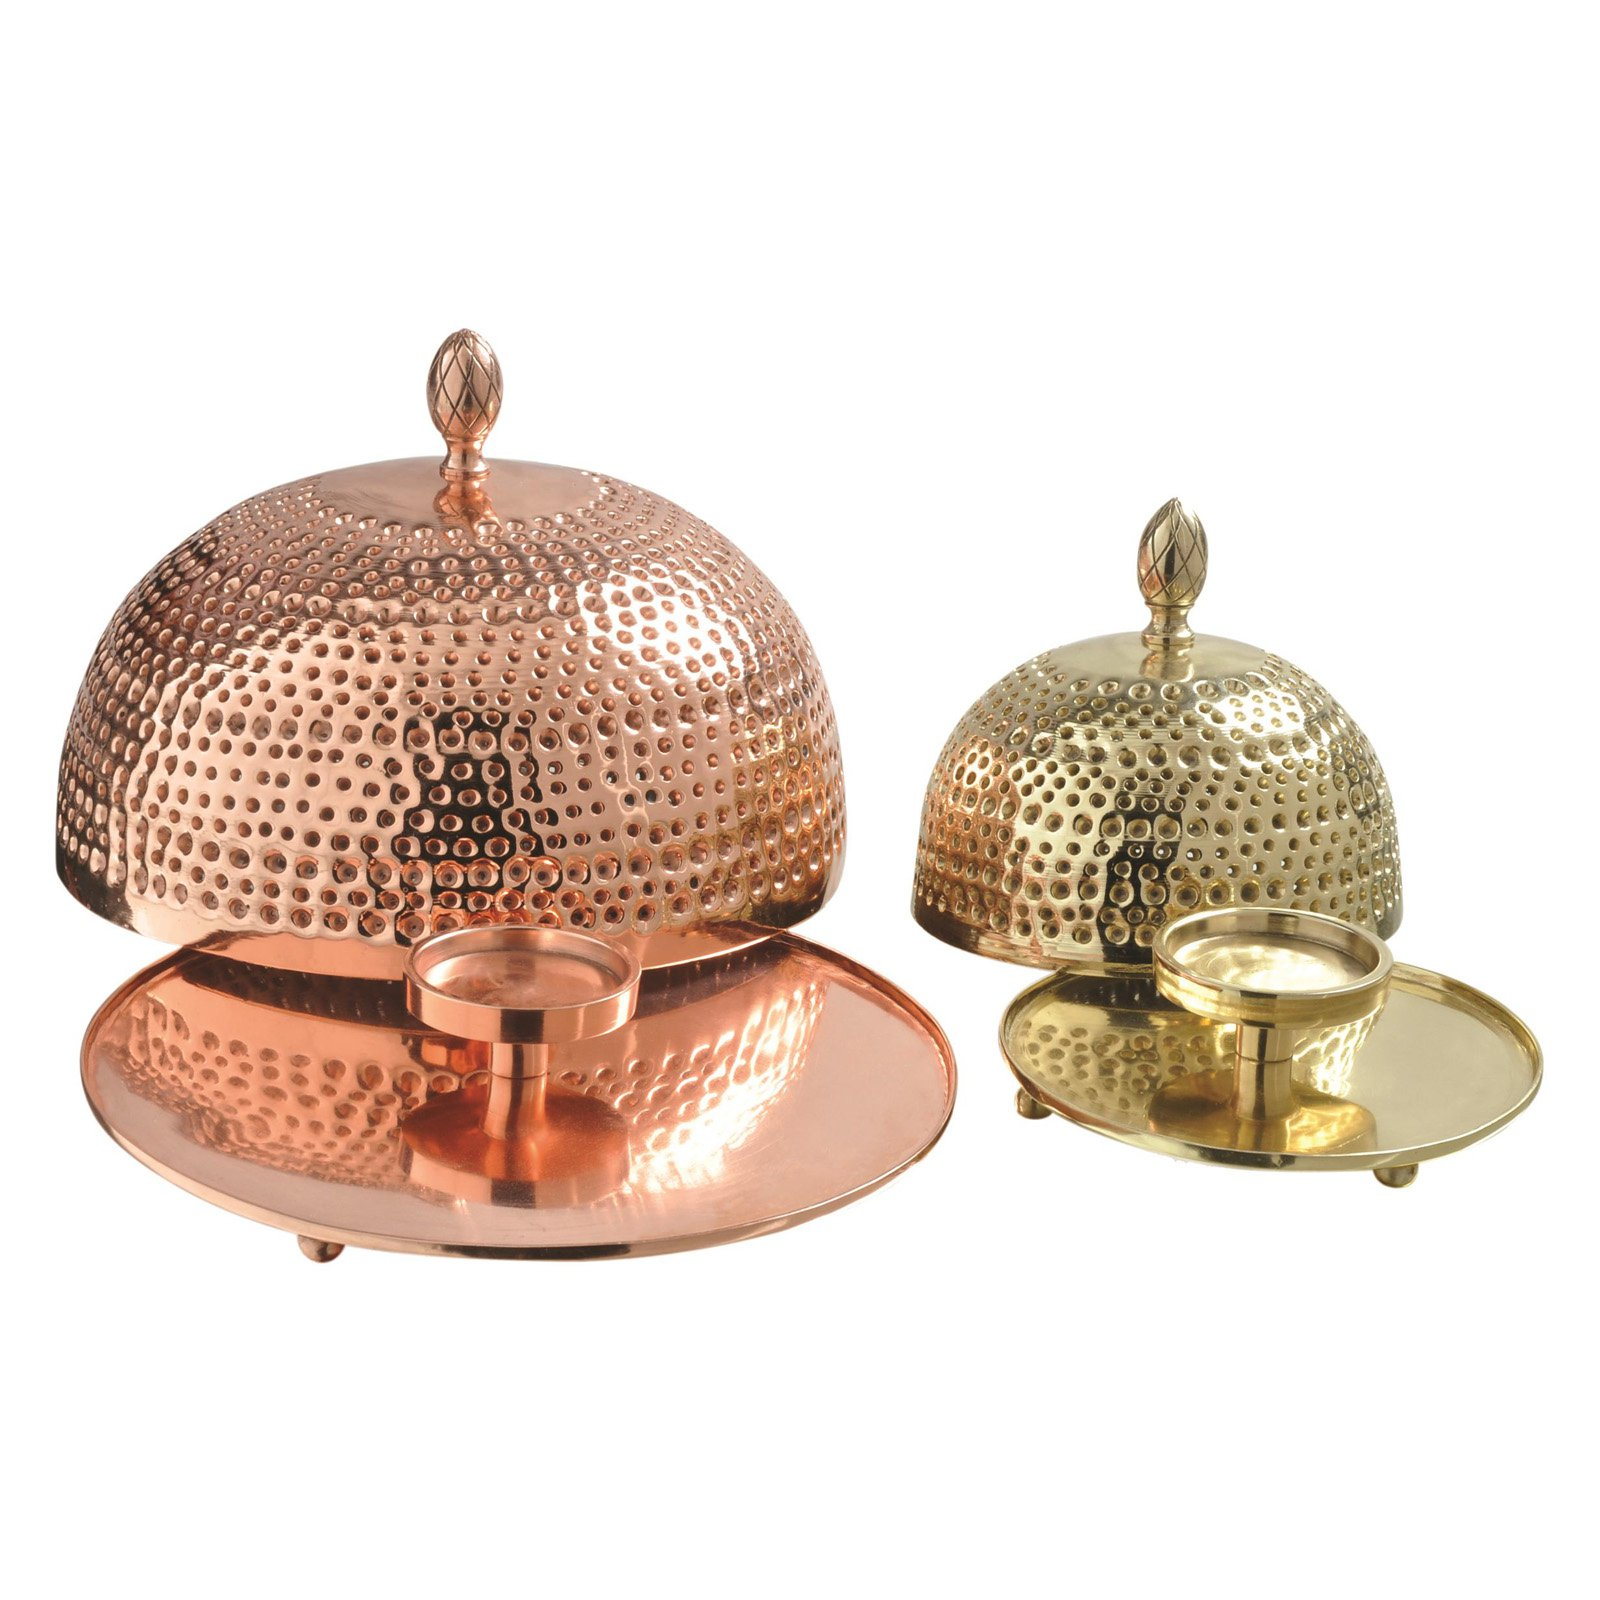 Ren-Wil Crustulam Candle Holder - Set of 2